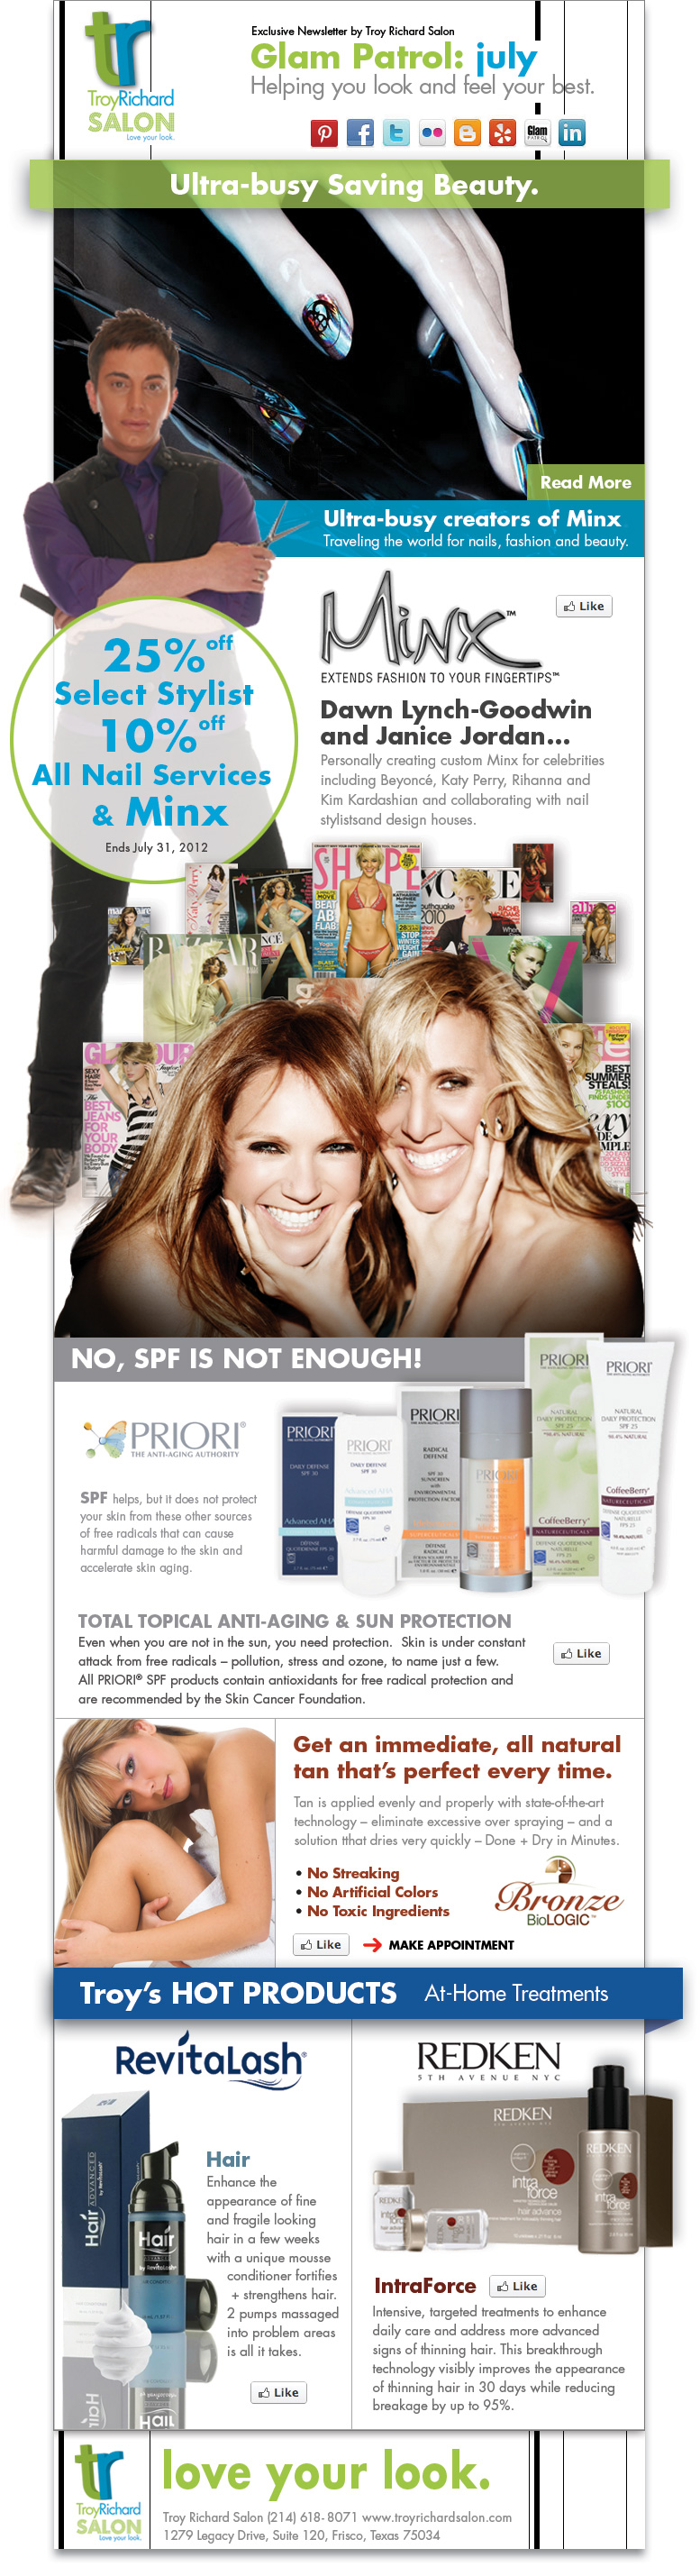 Troy Richard Salon Glam Patrol Monthly Newsletter